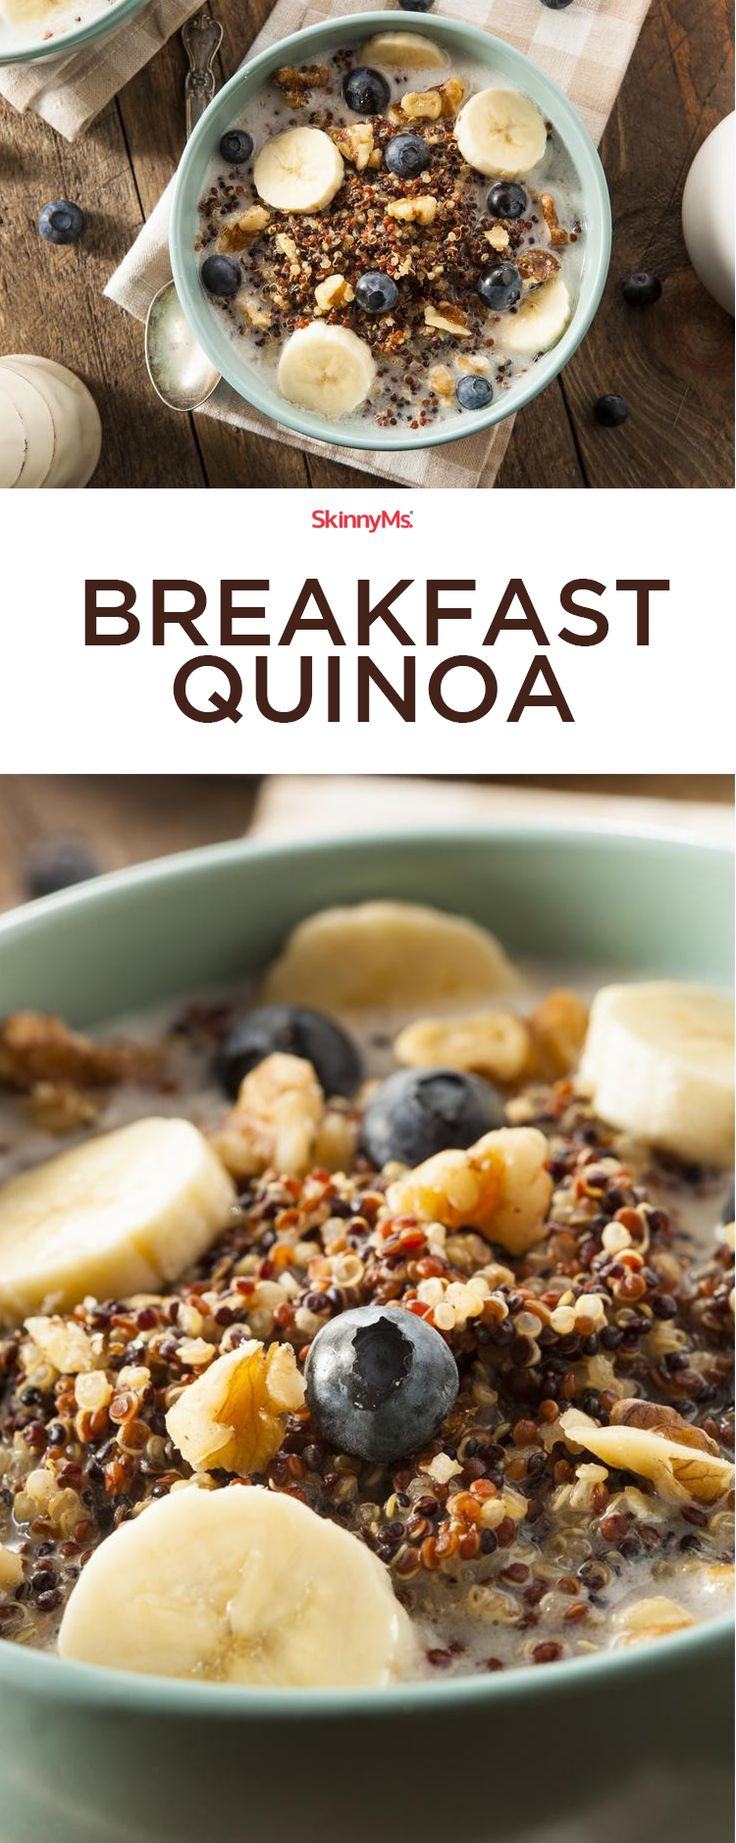 Deliciously sweet and savory, this Breakfast Quinoa recipe has you cooking quinoa in your choice of milk with a drizzle of honey.